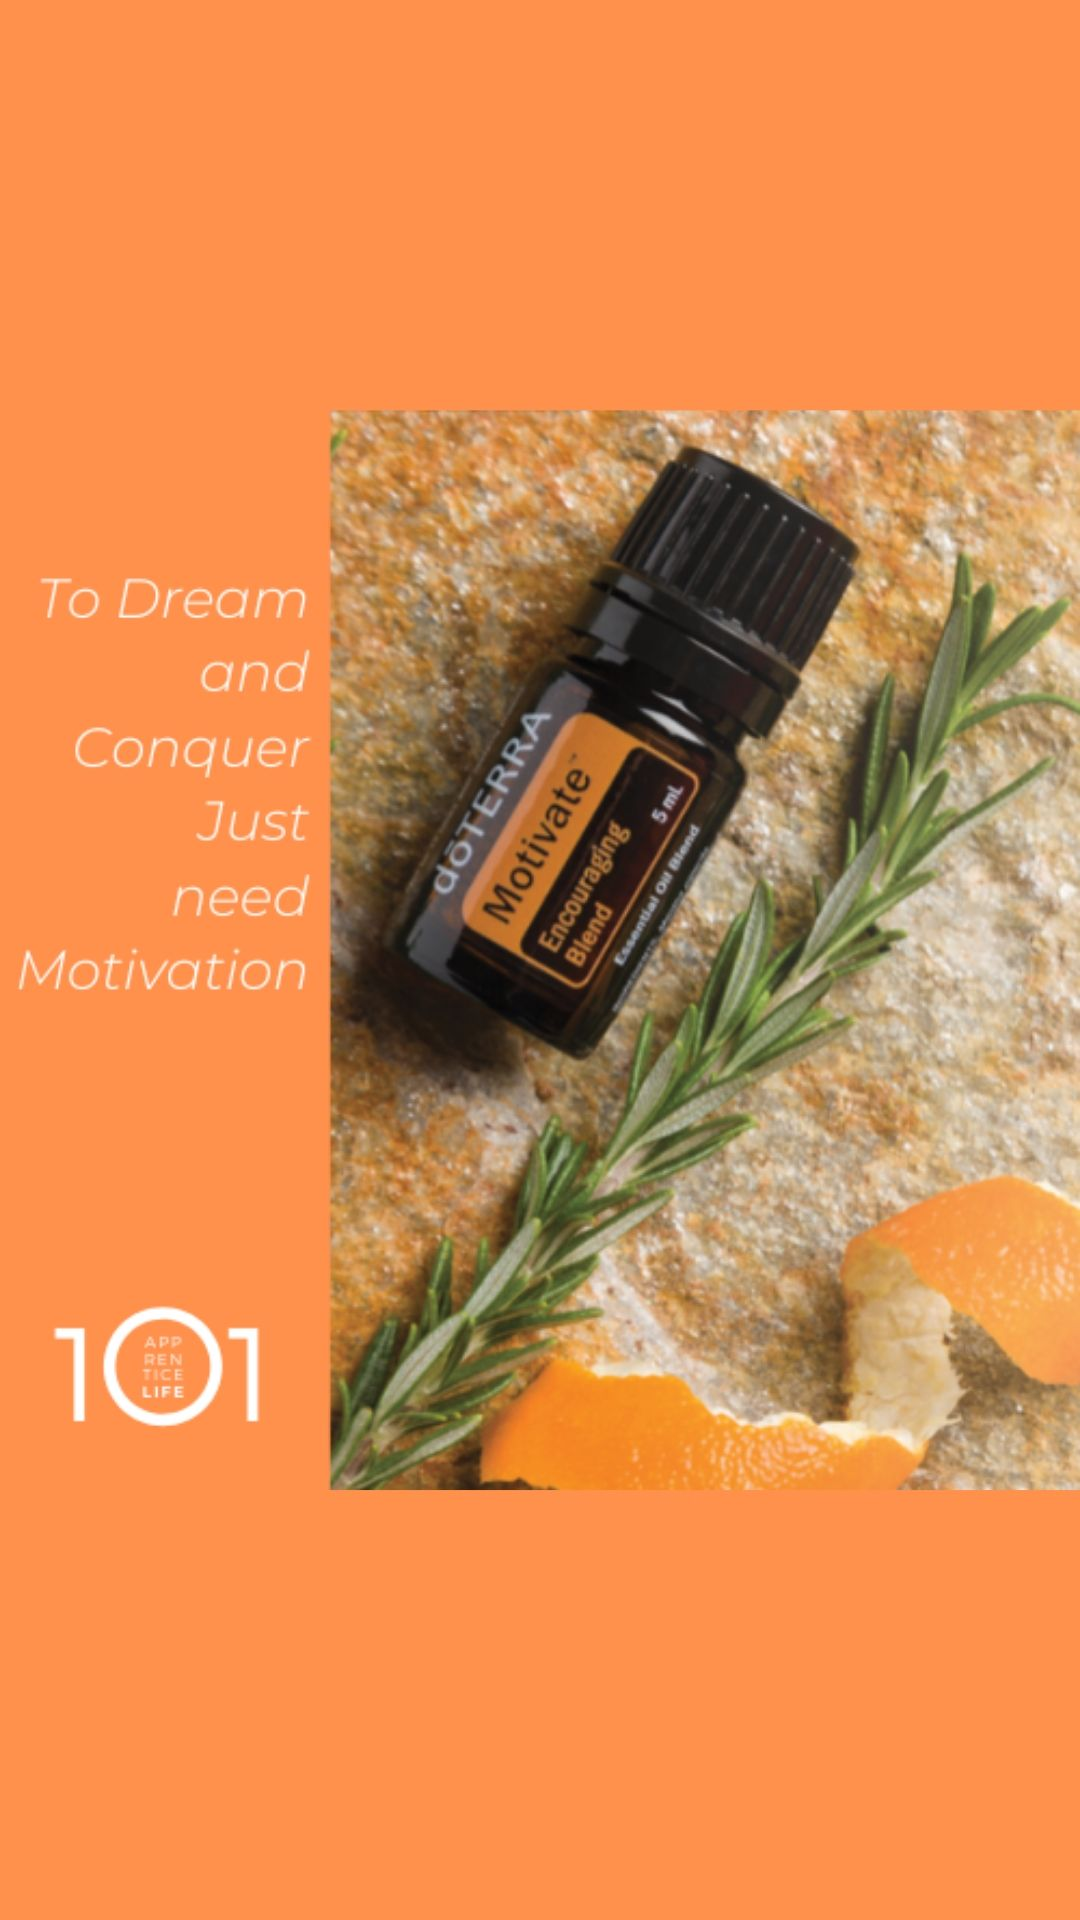 Essential Oil Motivate- conquer your dreams! need motivation? here is a special essence to look for